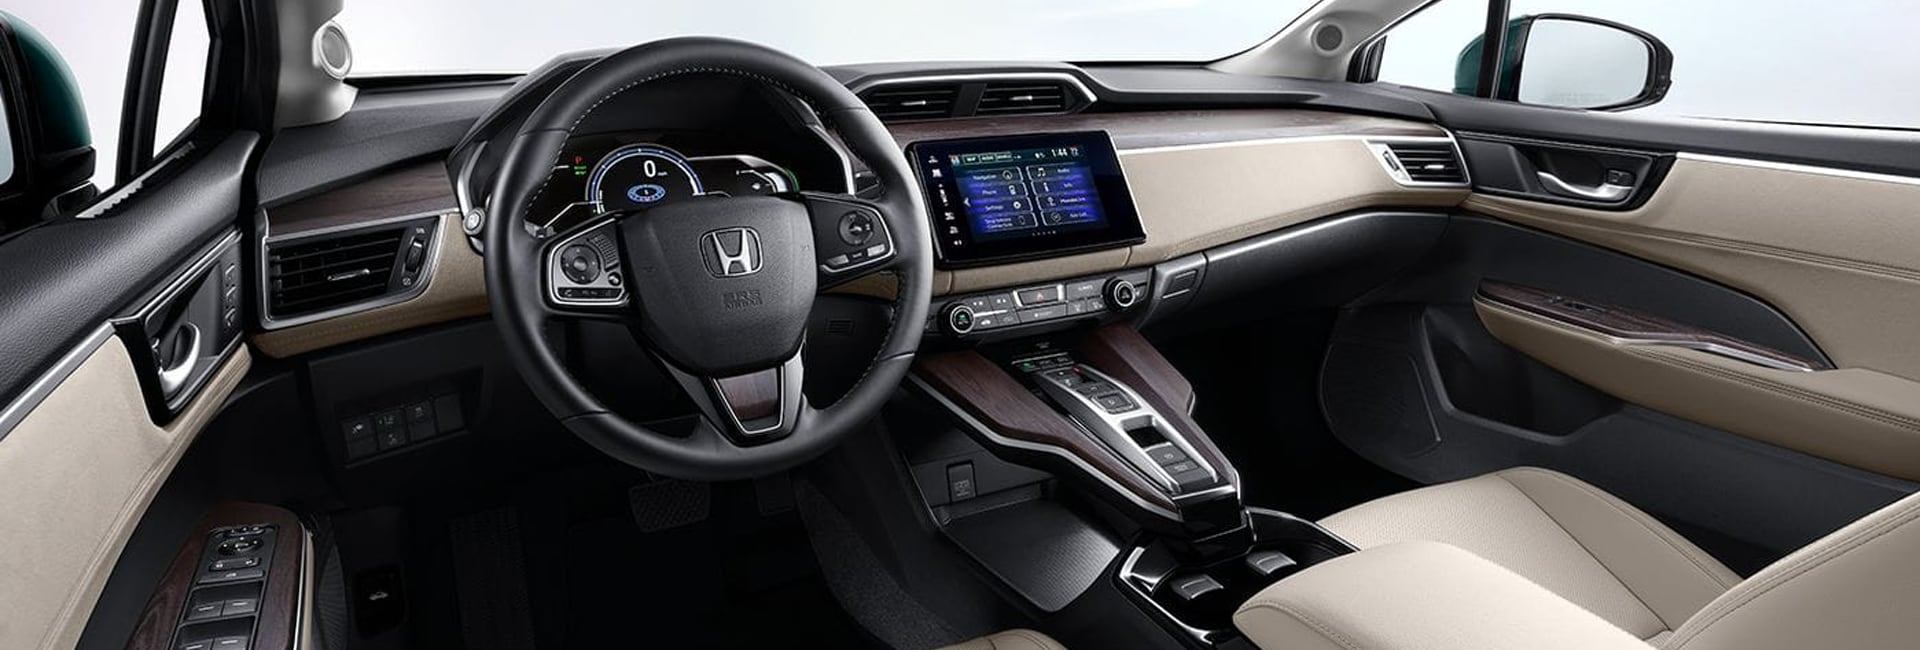 2019 Honda Clarity Plug-In Hybrid Interior